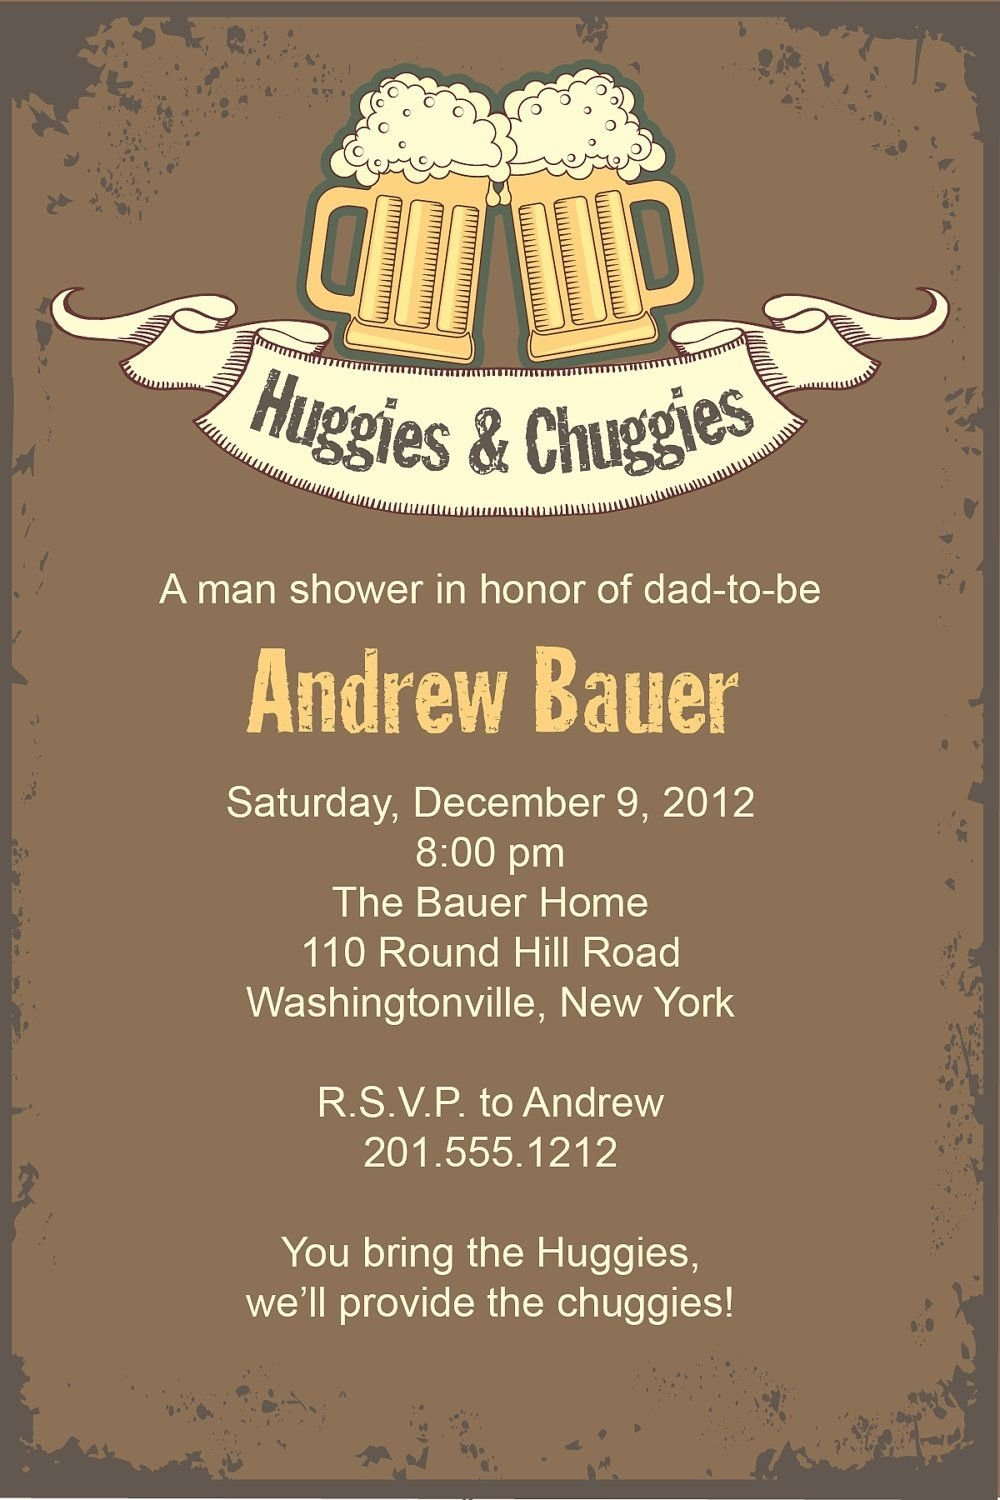 10 Elegant Diaper Party Ideas For Men vintage huggies chuggies bbq beer and babies diaper party 2021